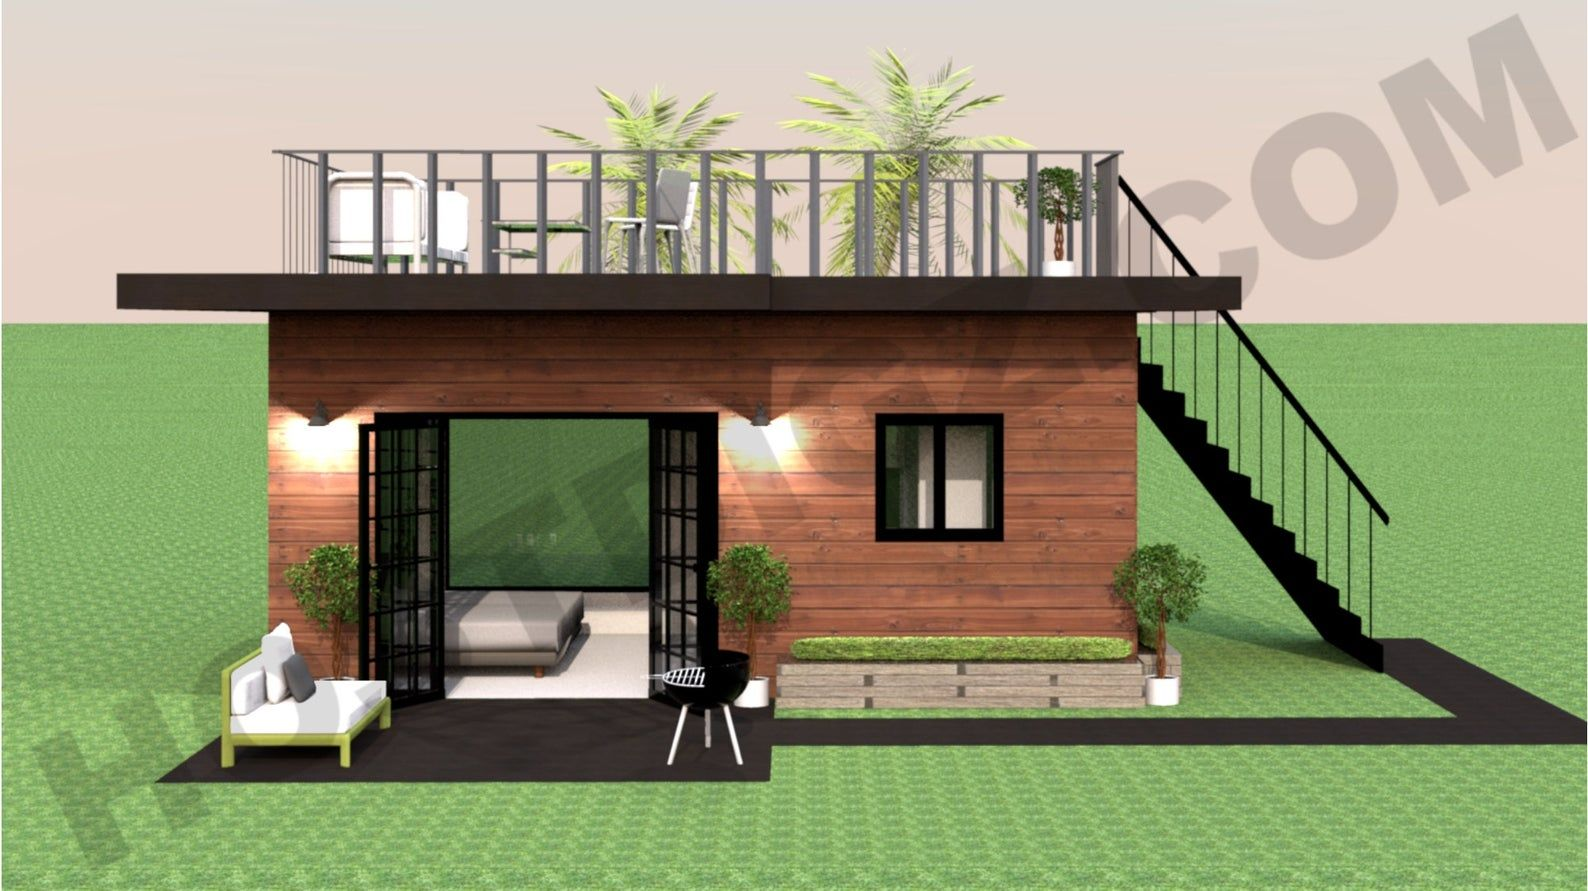 Shipping Container Studio Apartment Tiny Home Construction Plans Airbnb Floor Plan Architectural Designs Diy Container Home Building Plans Tiny House Design Container House Tiny House Floor Plans